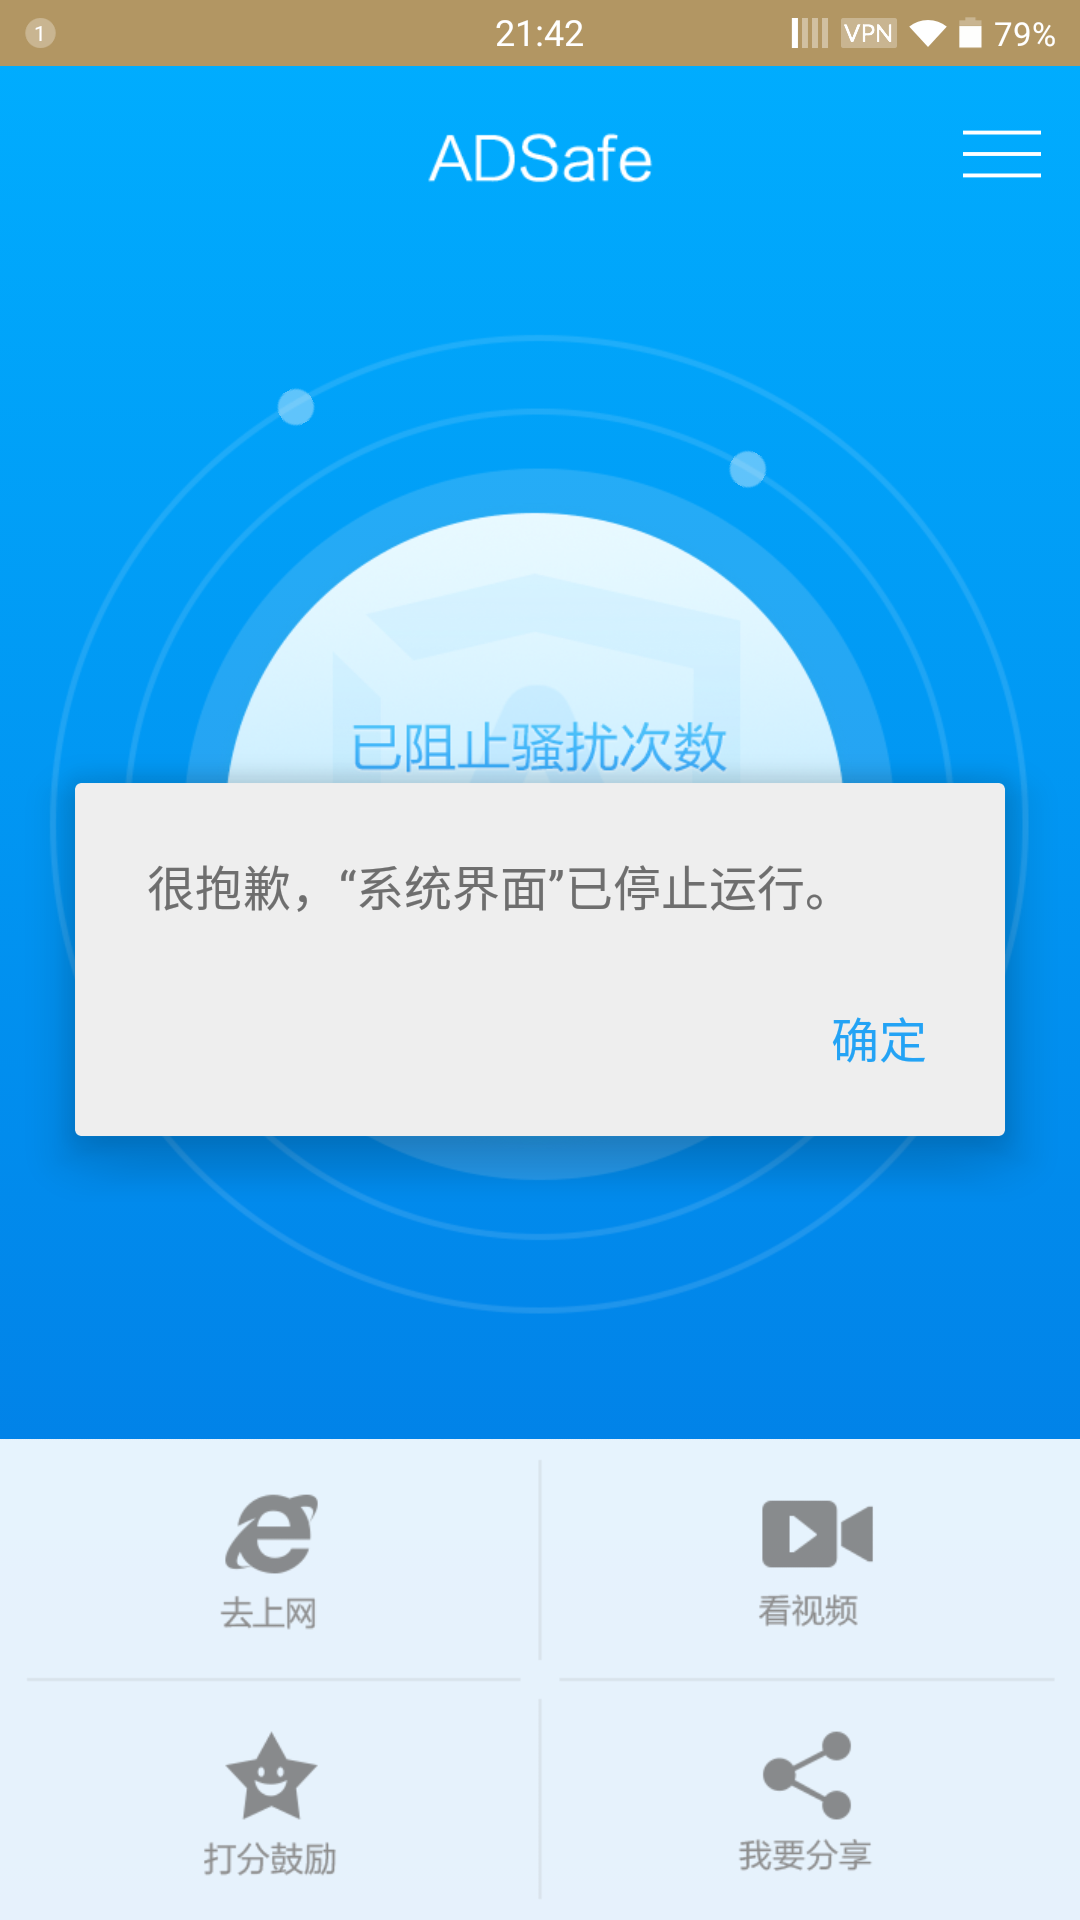 Screenshot_2015-07-10-21-42-38.png